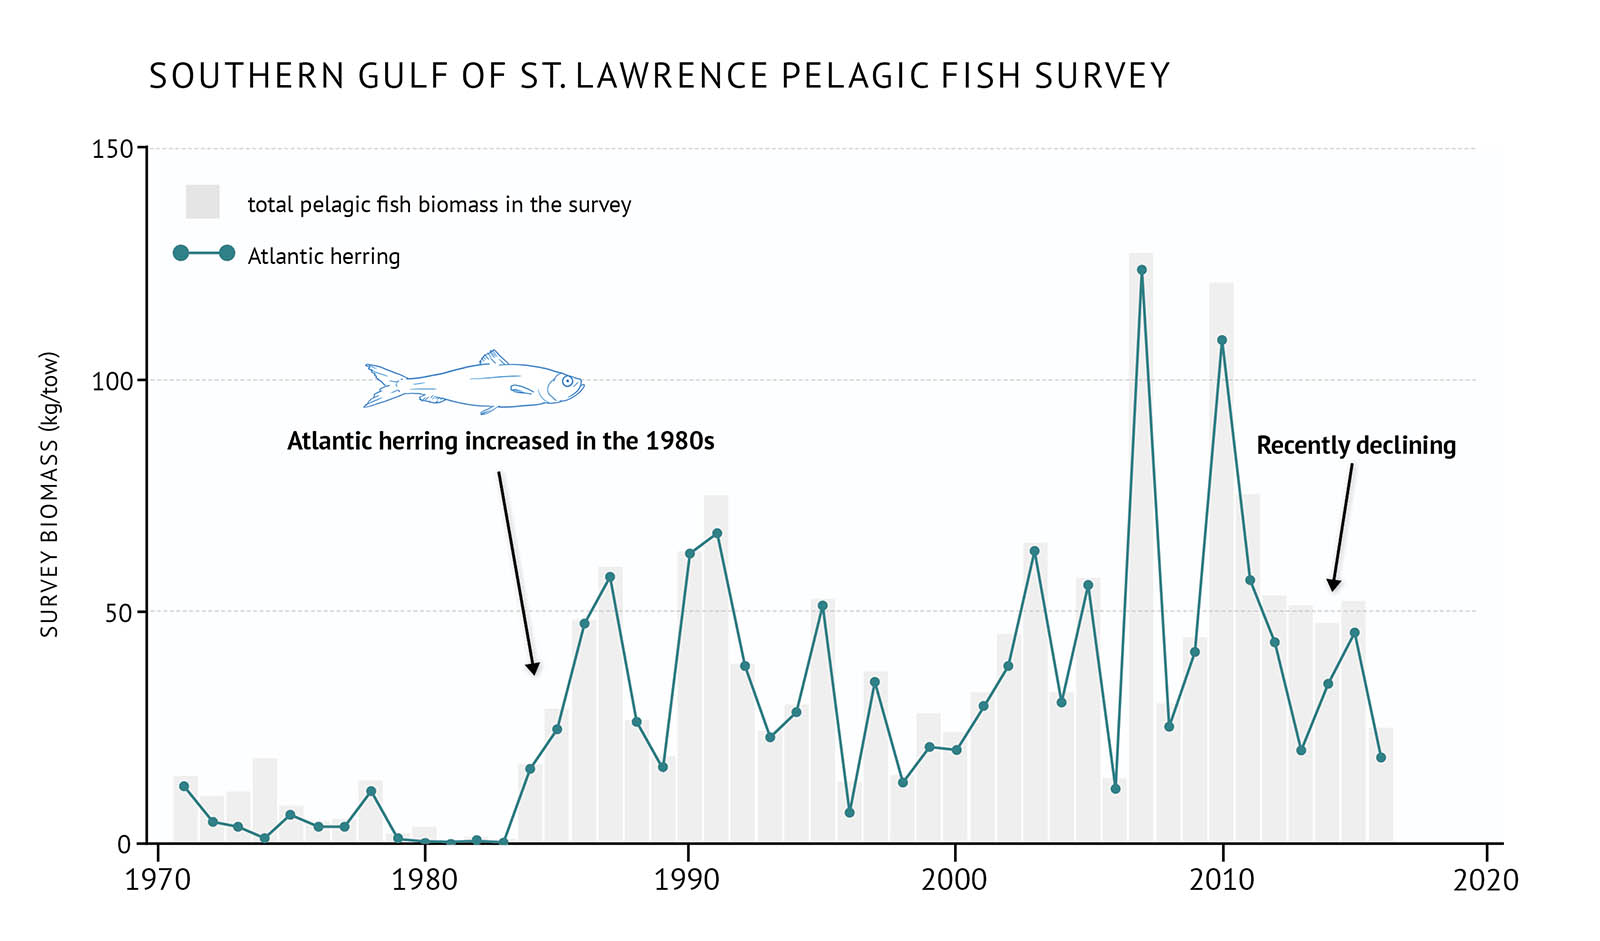 "Figure 22: Survey biomass for total pelagic fish and Atlantic herring in the southern Gulf of St. Lawrence. A bar and line graph illustrates the survey biomass for total pelagic fish as well as Atlantic herring in the southern Gulf of St. Lawrence. Text above the graph says ""Southern Gulf of St. Lawrence Pelagic Fish Survey"". The vertical axis on the left shows the survey biomass in units of kilograms per tow from 0 to 150 in increments of 50. The bottom horizontal axis shows the years between 1970 and 2020 in 10 year increments. The survey biomass for total pelagic fish in the survey is represented by grey vertical bars. The total pelagic fish survey biomass is low throughout the 1970s, but increases rapidly in the 1980s. It then generally fluctuates between approximately 25 and 50 kilograms per tow with two peaks above 100 kilograms per tow in the late 2000s and early 2010s. It decreases in 2016 which is the last year of data on the graph. The survey biomass of Atlantic herring is represented by a green line on the same graph. A legend appears on the left. The Atlantic herring survey biomass generally reflects that of the total pelagic fish survey biomass. It is low during the 1970s and then increases in the 1980s and remains mostly between 25 and 50 kilograms per tow with two peaks above 100 kilograms per town in the late 2000s to early 2010s. Then in the 2010s it decreases. A small, light blue outline drawing of an Atlantic herring is placed above the vertical bars to the left-hand side of the graph. Below the drawing there is text which states ""Atlantic herring increased in the 1980s"". An arrow points down to the mid-1980s period. Another line of text on the right-hand side of the graph says ""Recently declining"". An arrow points from the text to the mid-2010s period."